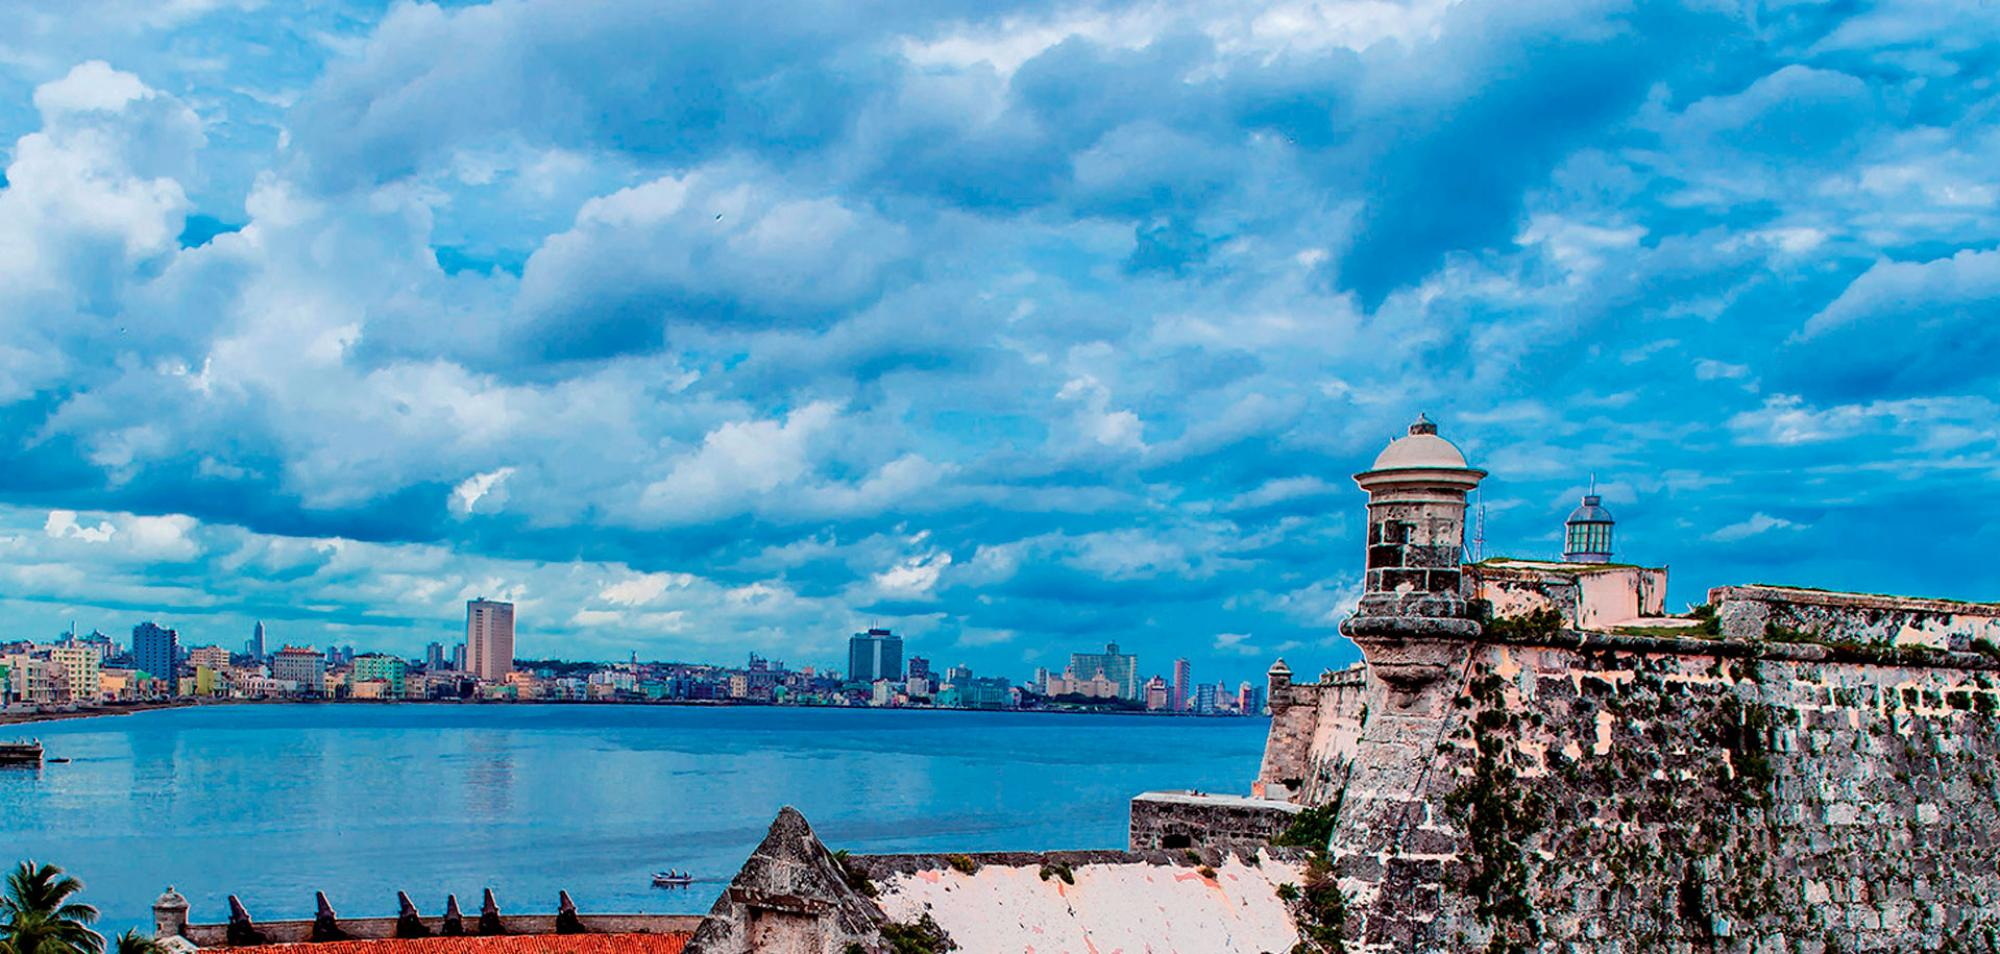 The Morro Cabaña Park, The Story of the Havana's Gates